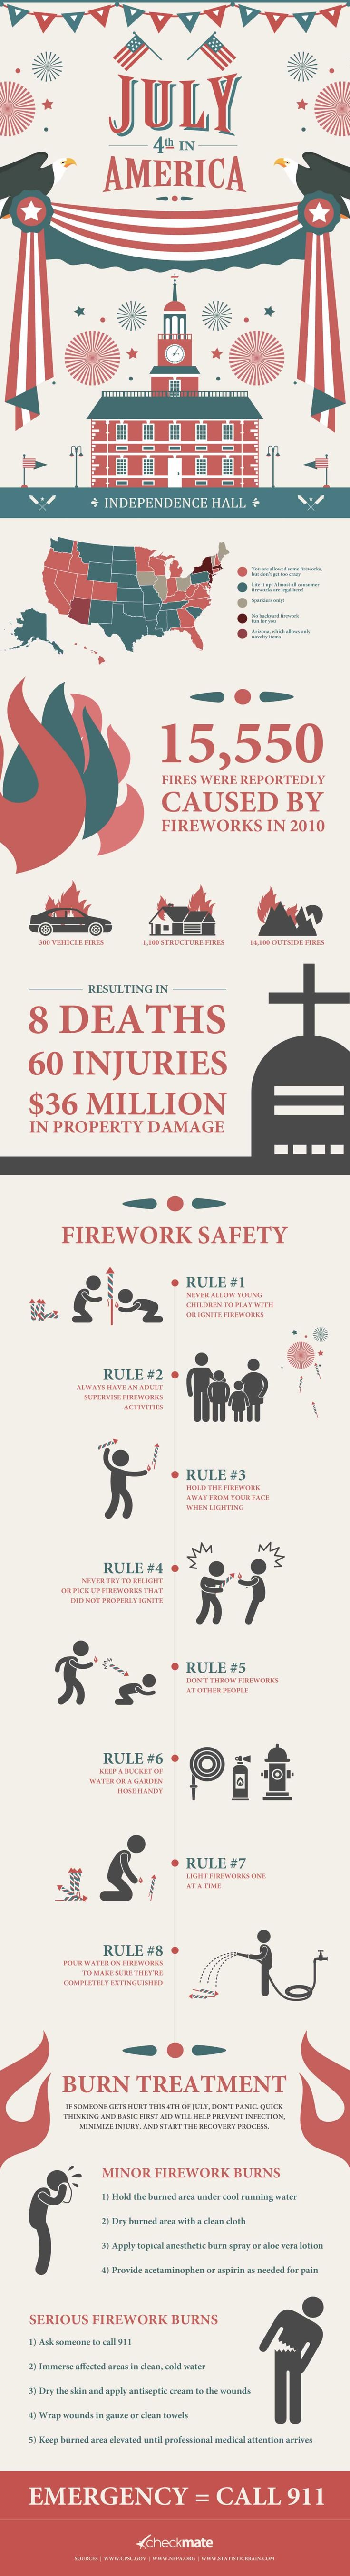 Fireworks 101 — 4th Of July Safety